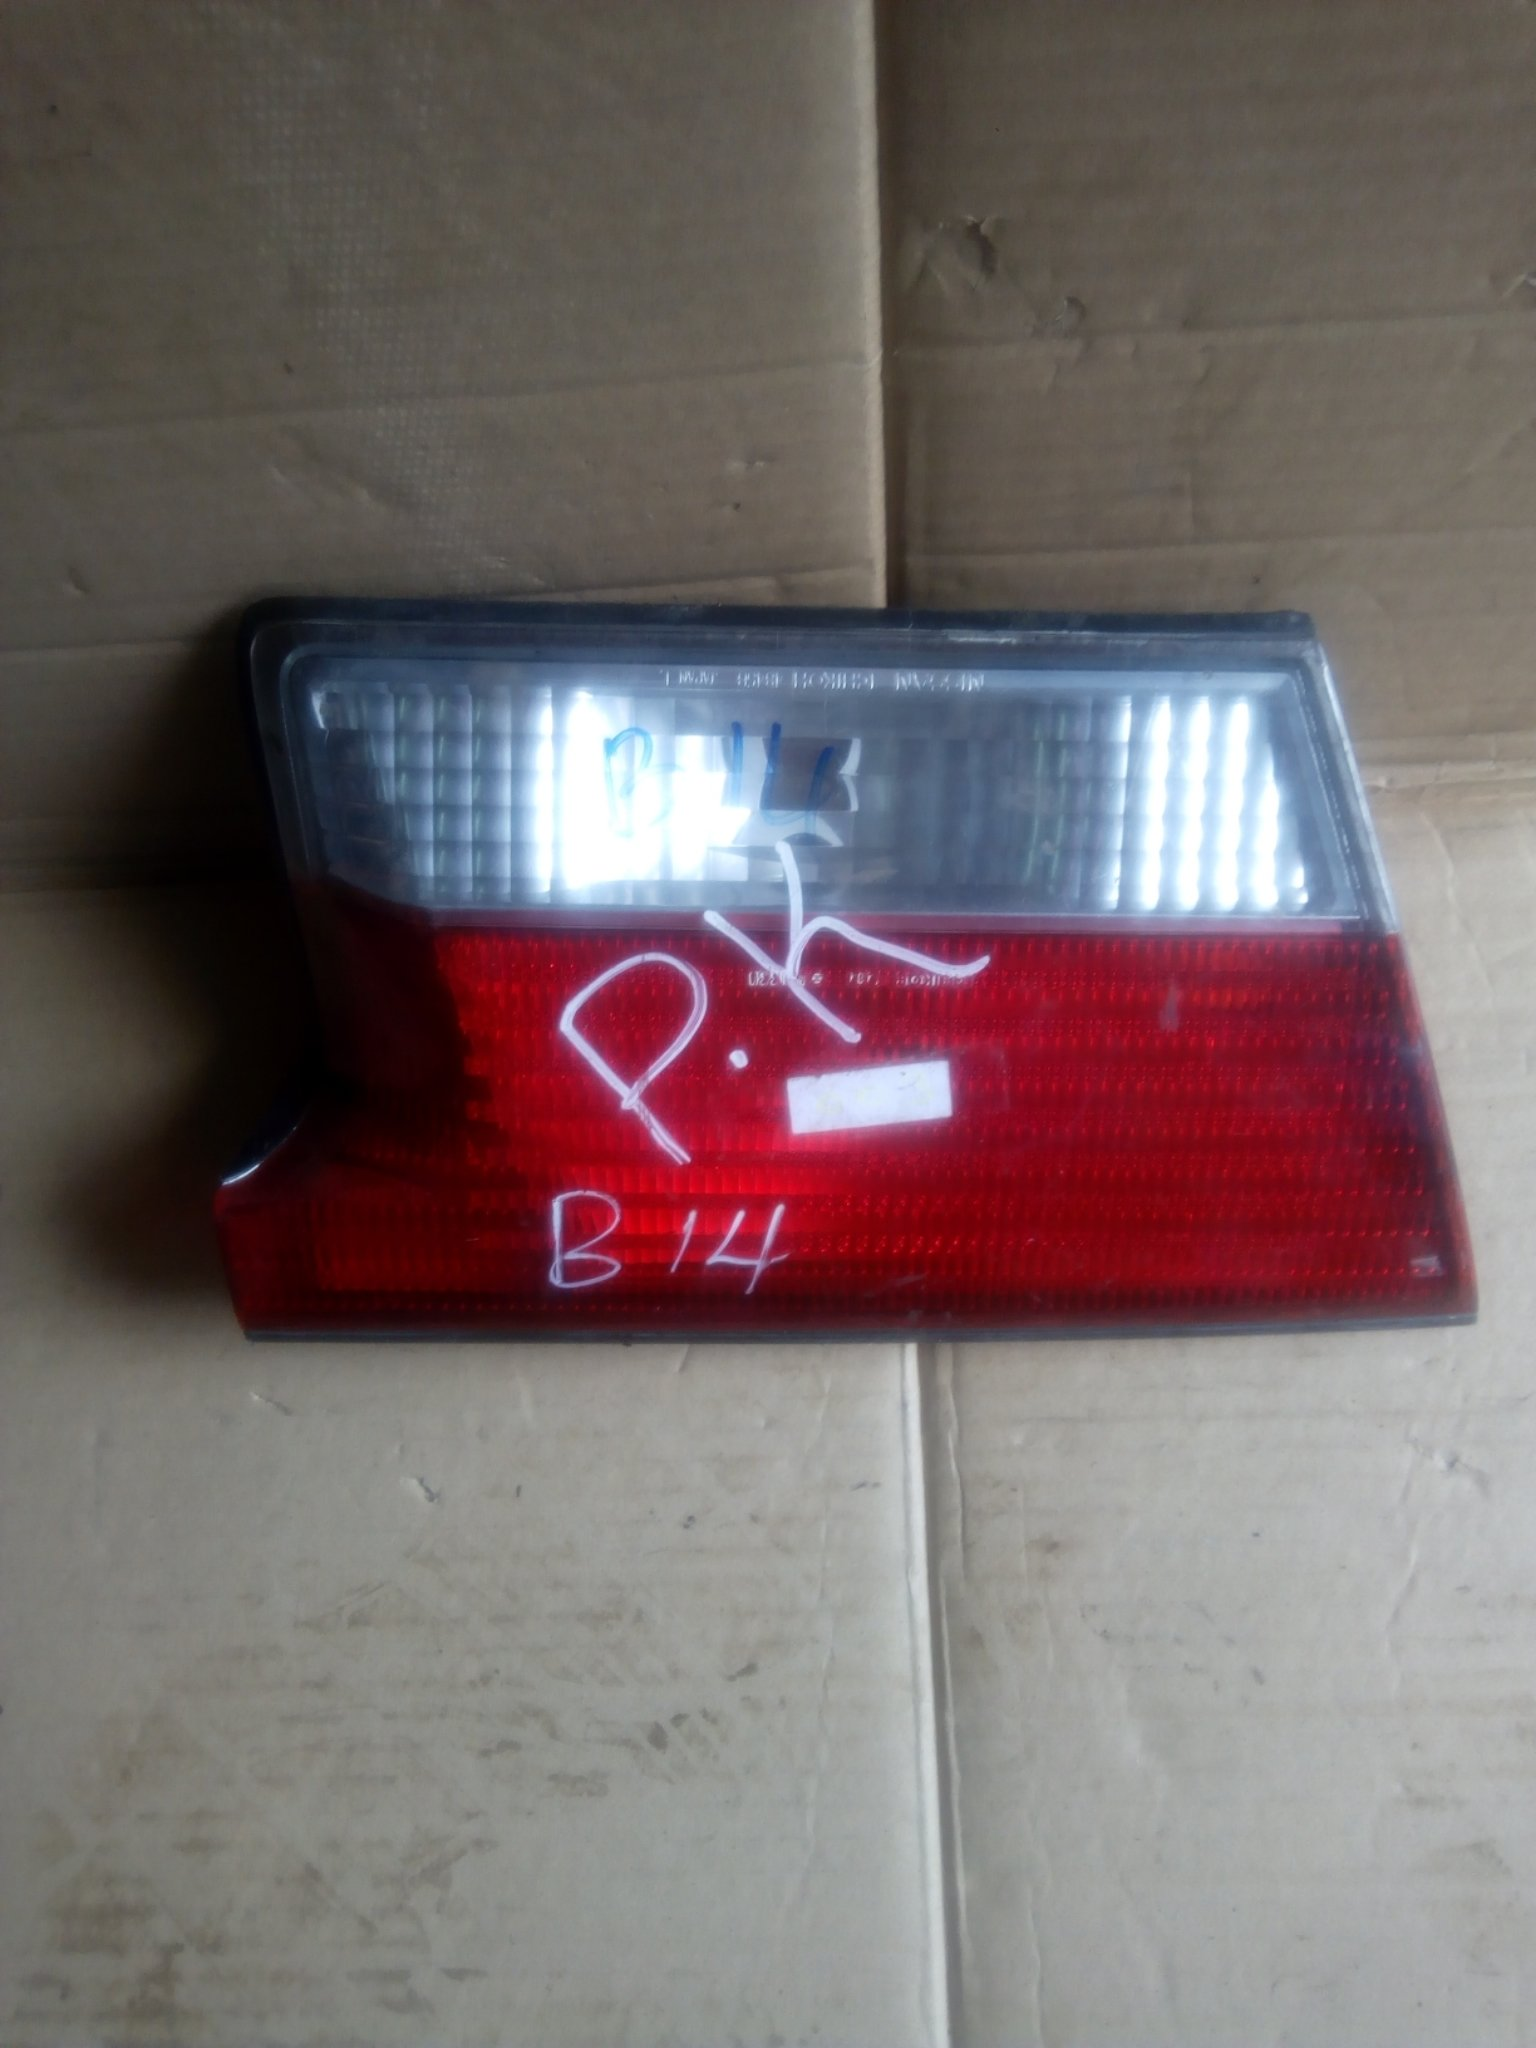 Nissan B14 tail light 00232